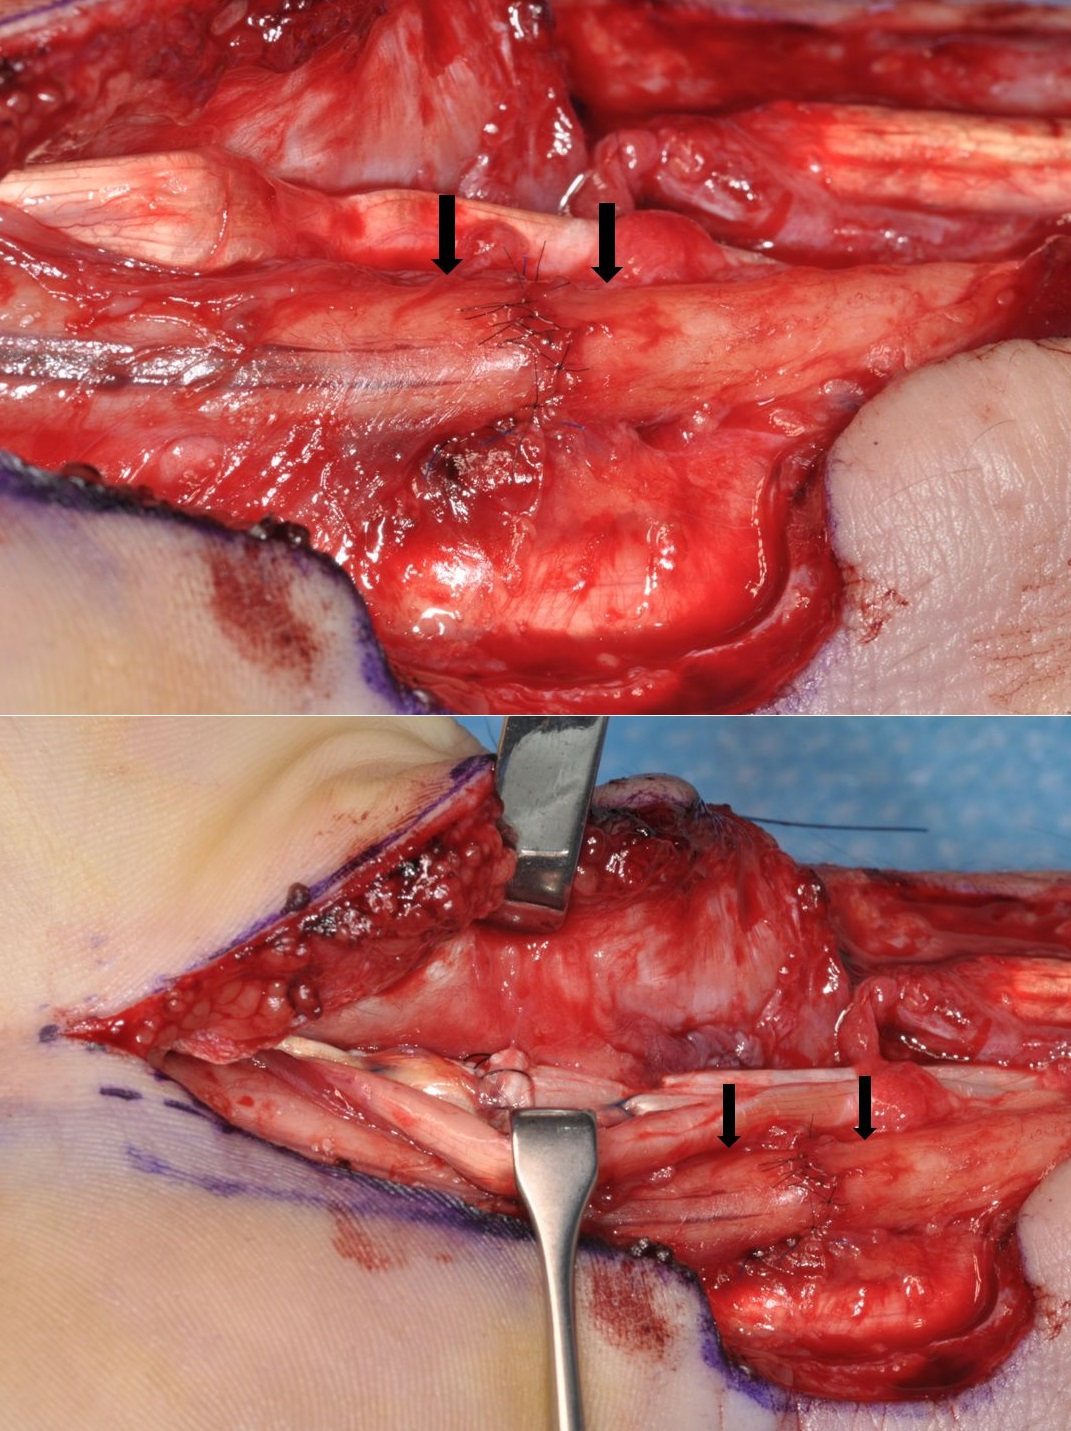 Suture repair of the median nerve at the wrist.